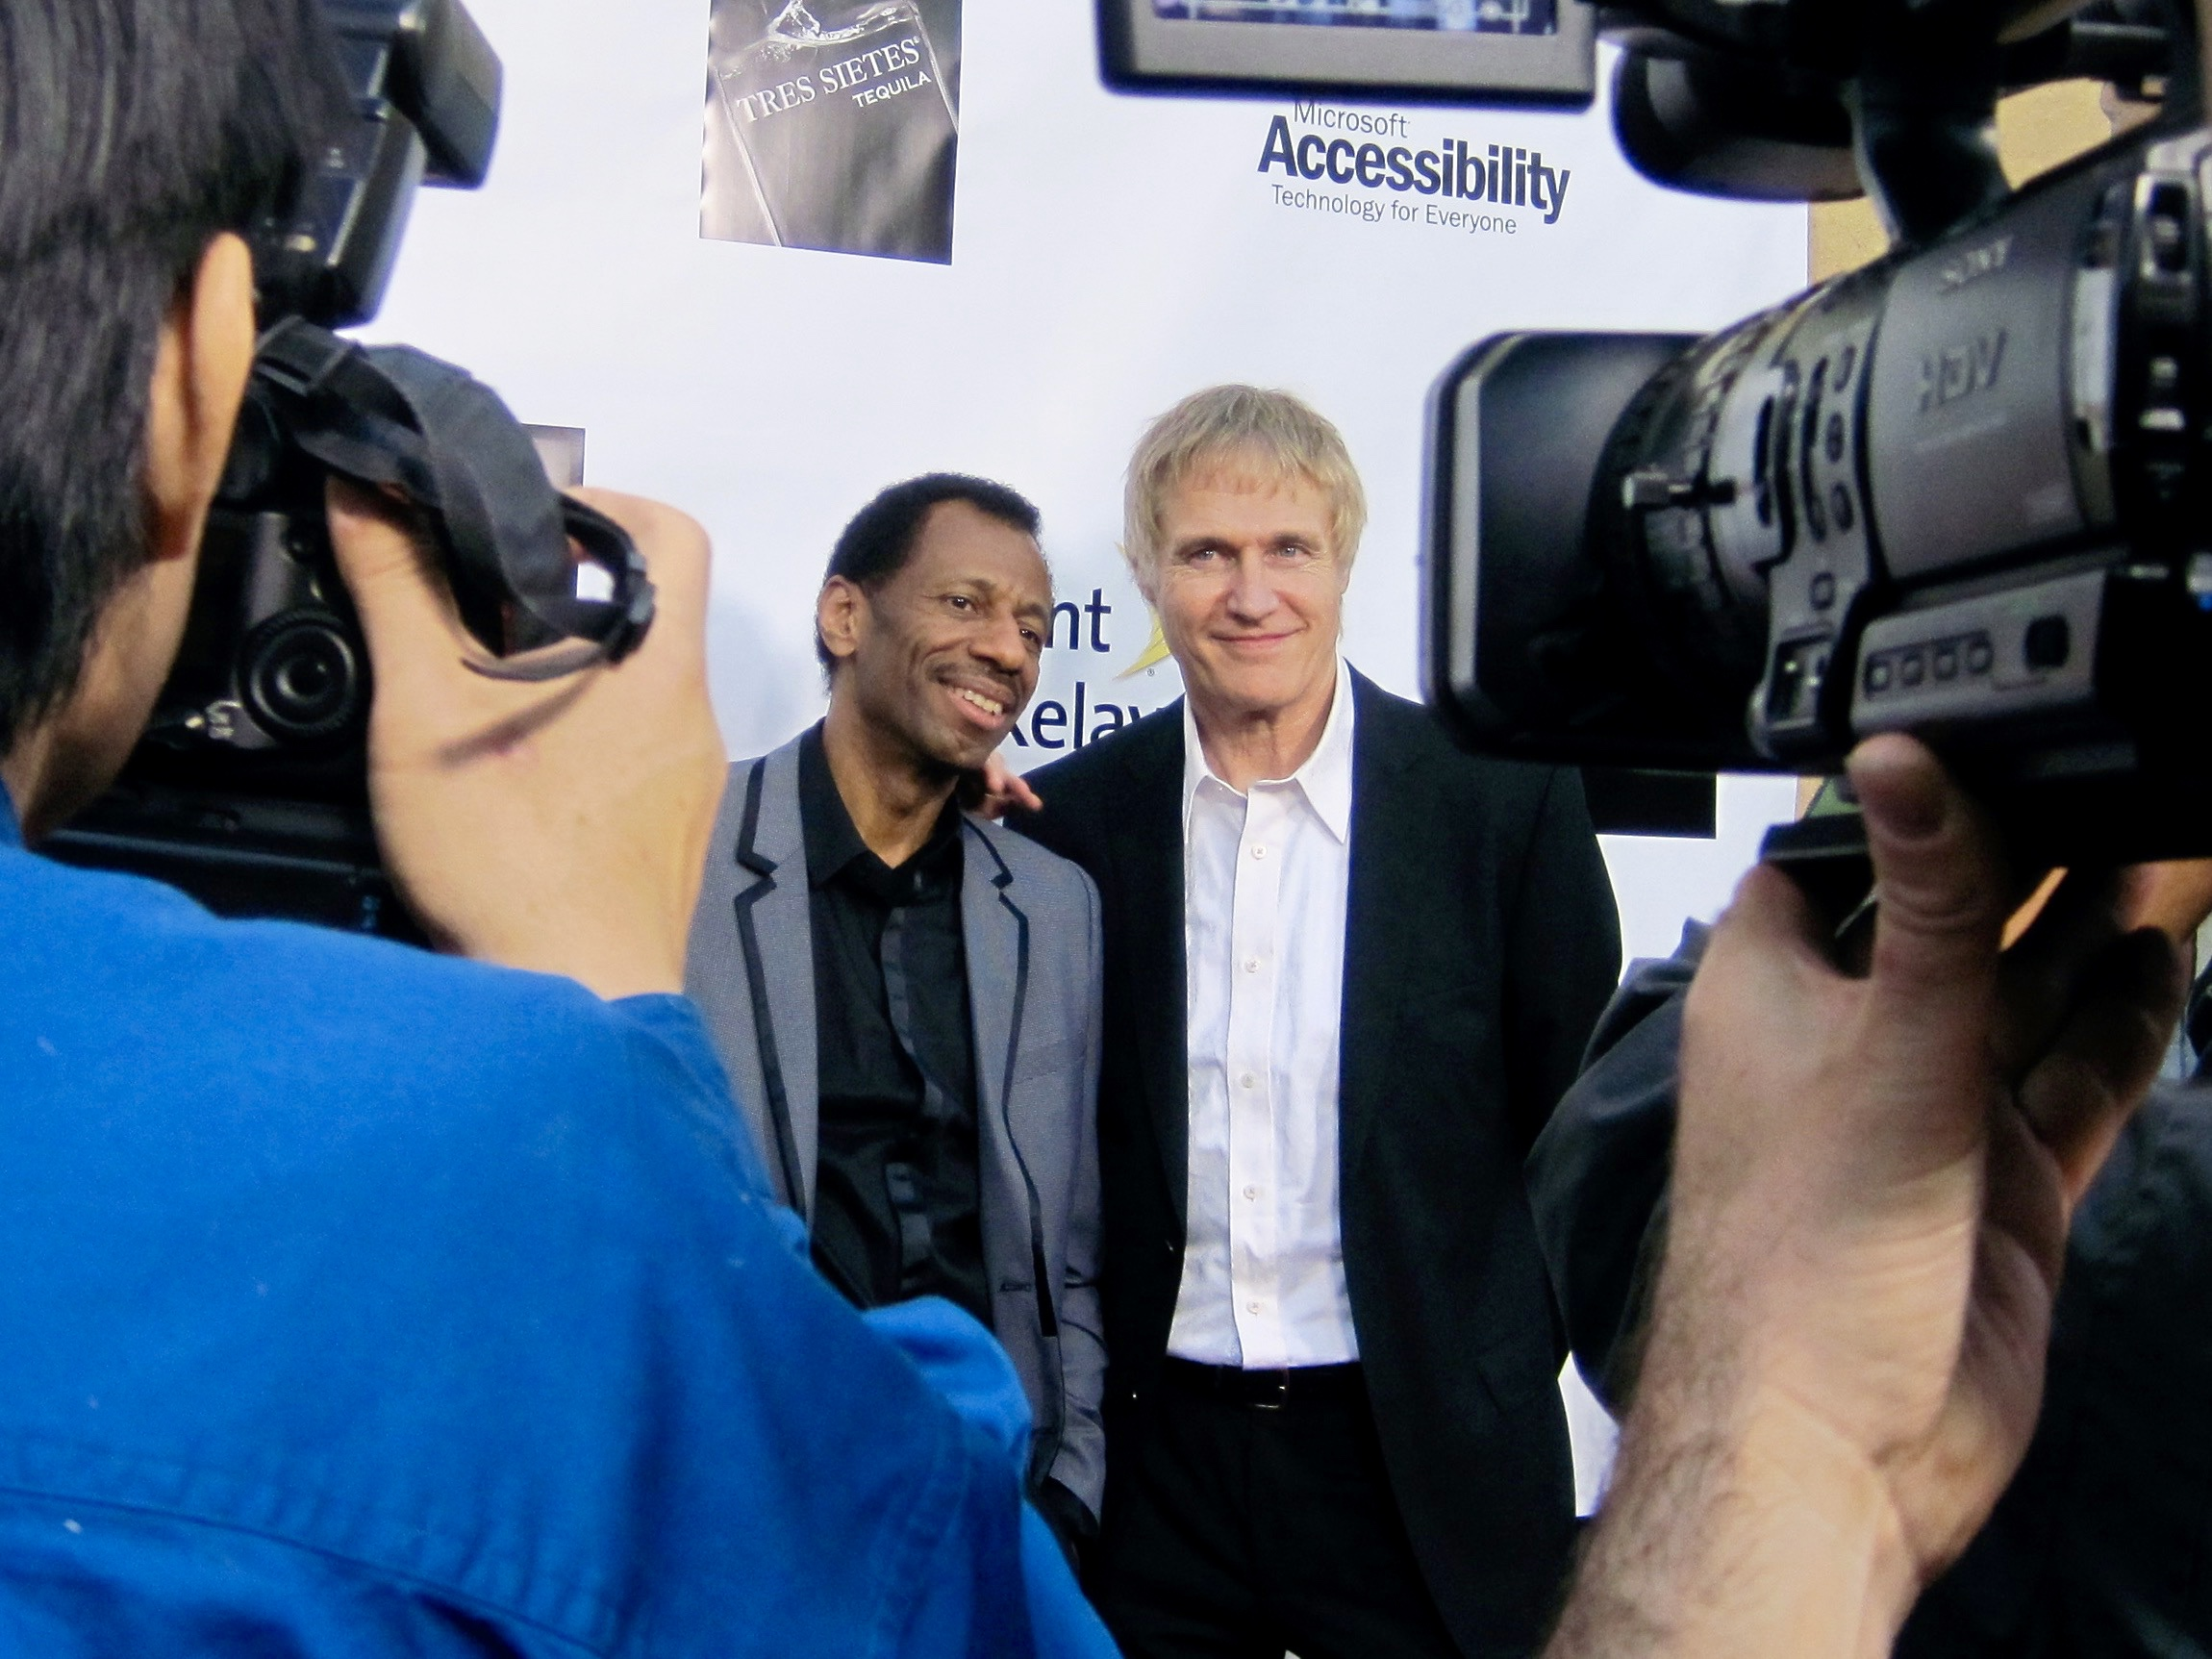 Actor CJ Jones and Beethoven's Nightmare drummer Bob Hiltermann at the Egyptian Theatre for the premiere of Wordplay, Inc.'s feature documentary  See What I'm Saying , directed by Hilari Scarl.  Photo by John Drouillard.